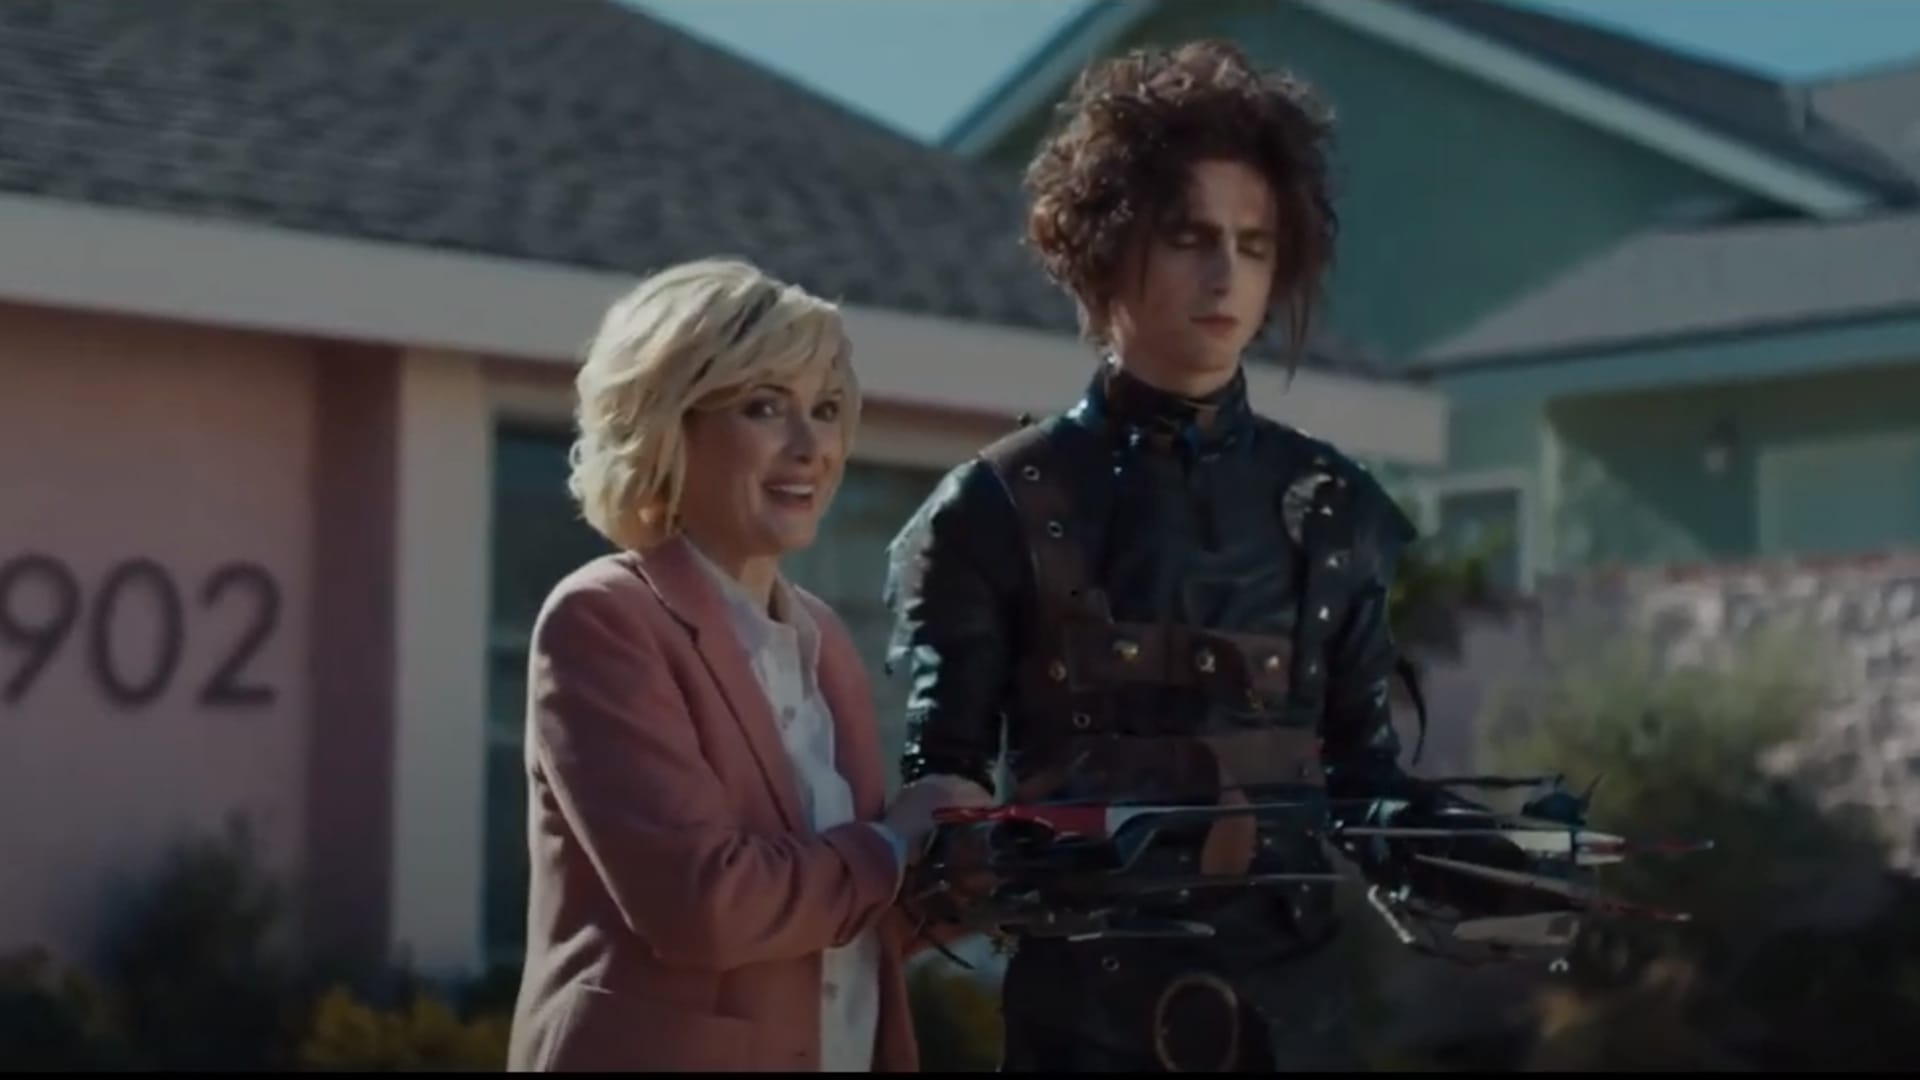 A 60-second Super Bowl ad for Cadillac stars Timothée Chalamet, as Edward Scissorhands's son, Edgar, and Winona Ryder, reprising her role as Kim, who is also Edgar's mother.